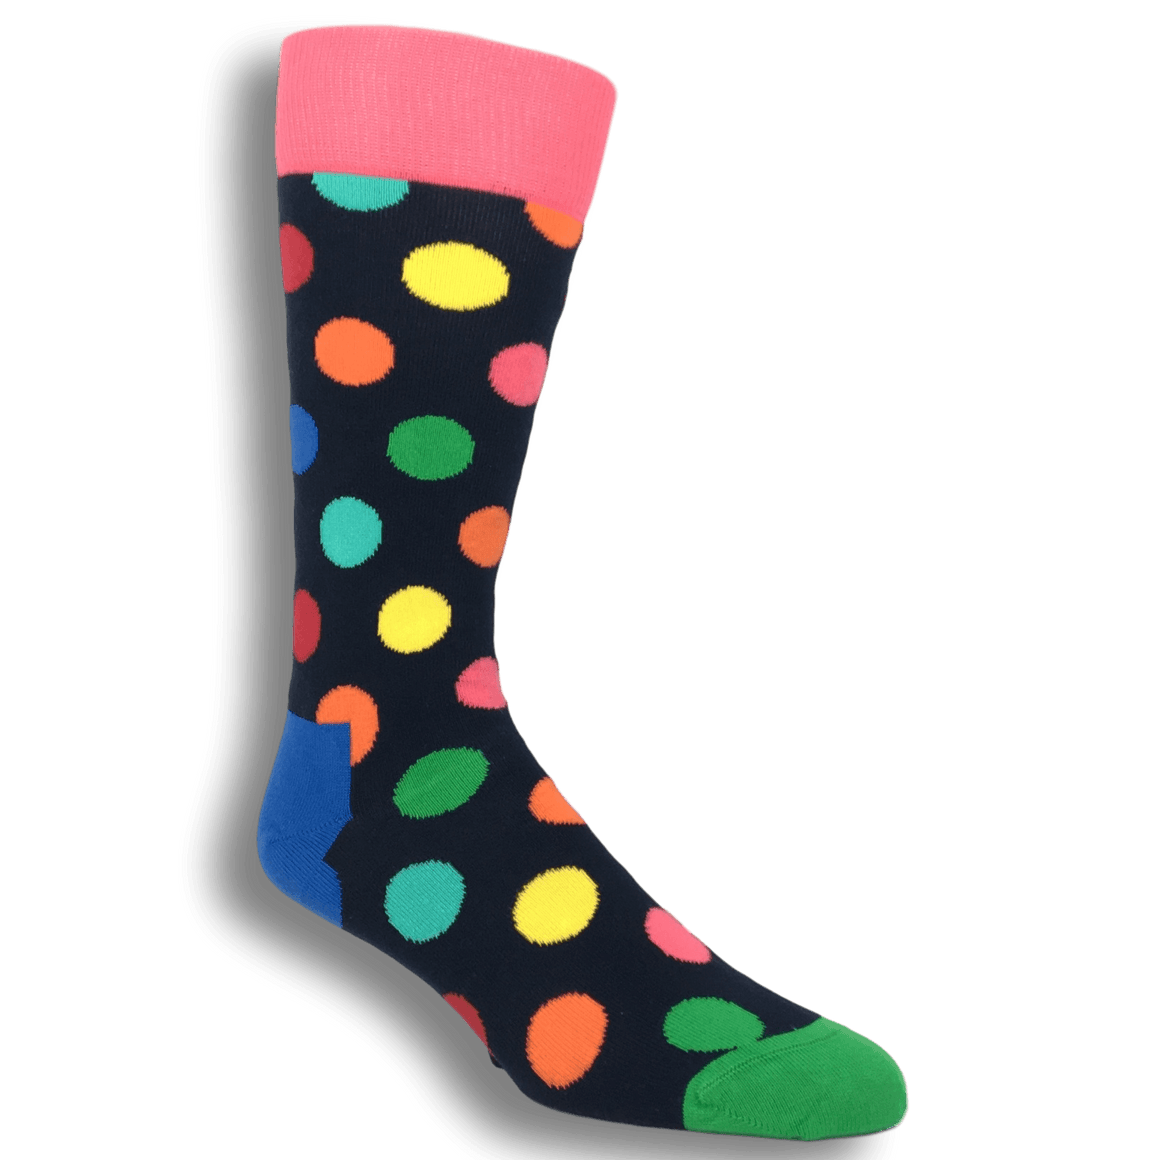 Red, Green, and Blue Multi Colored Big Dot Socks by Happy Socks - The Sock Spot